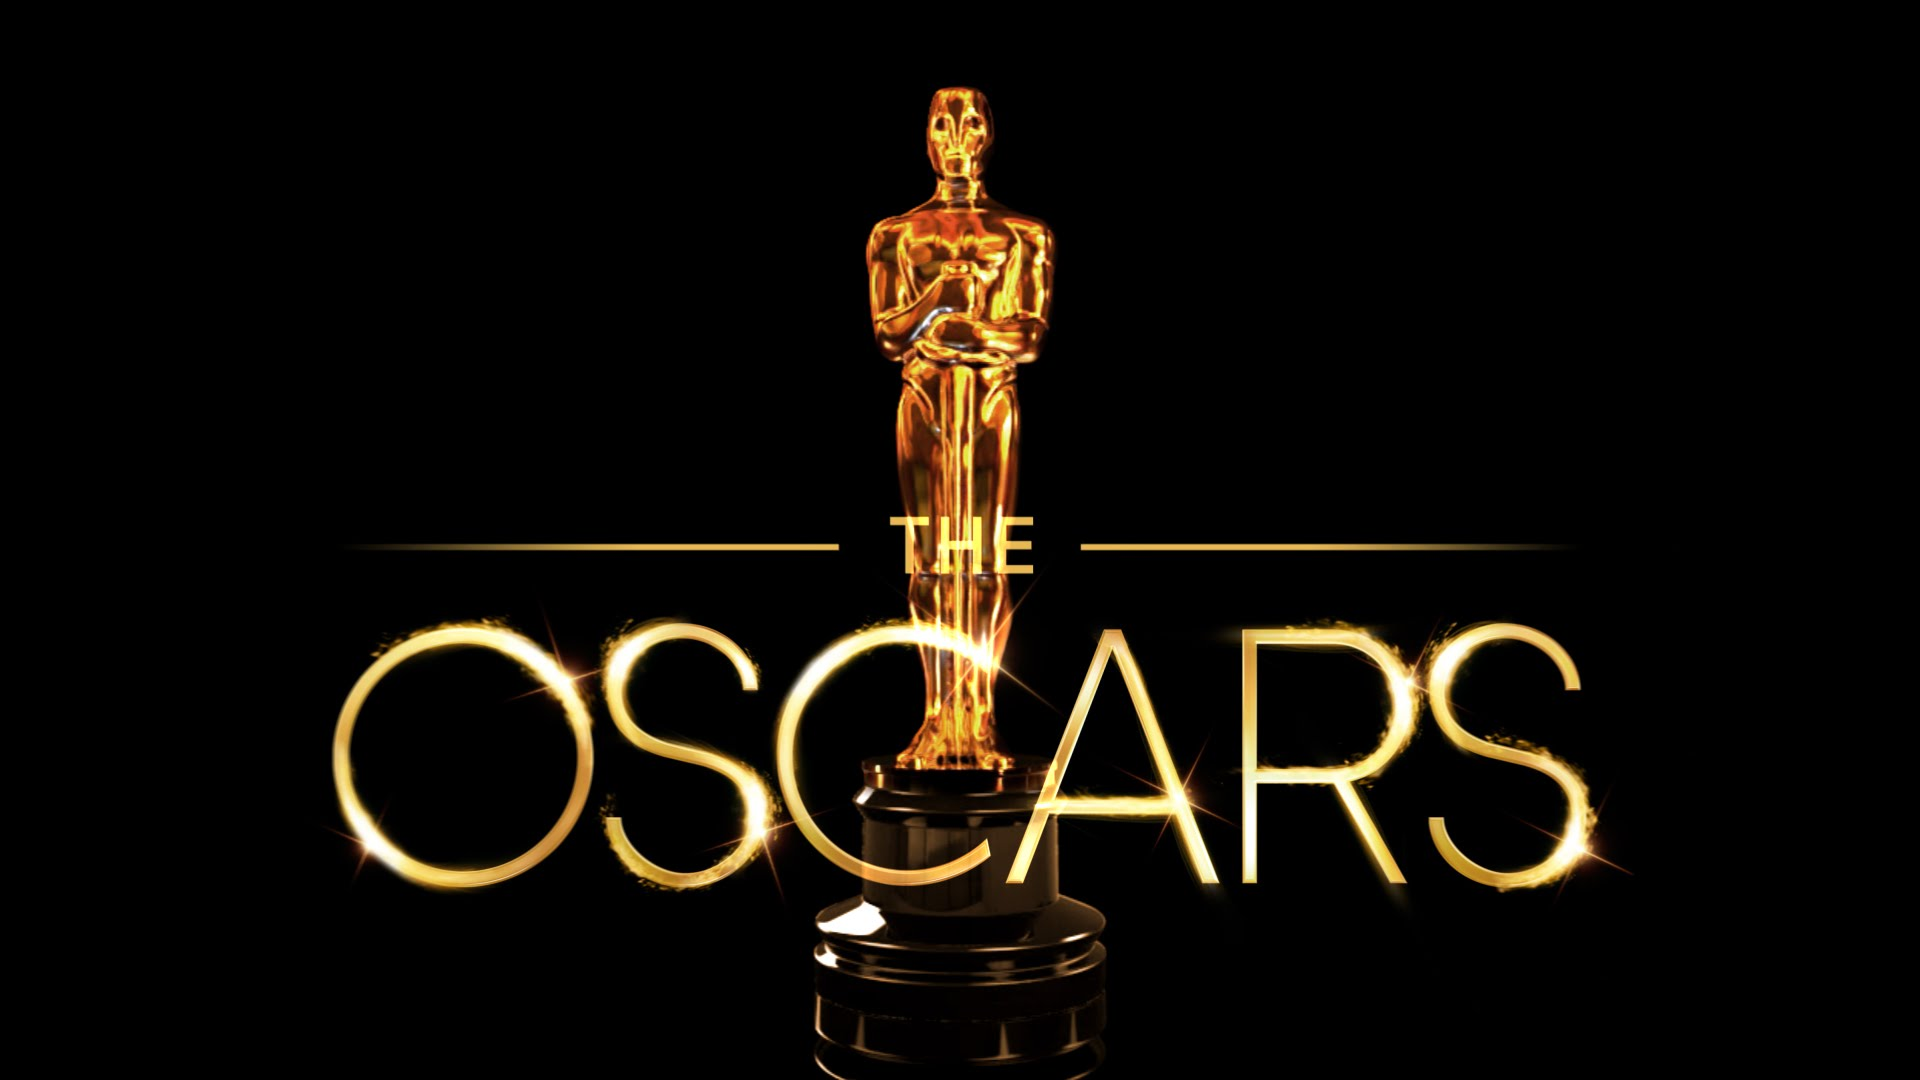 APPARENTLY, THE OSCARS ARE HAPPENING AGAIN …